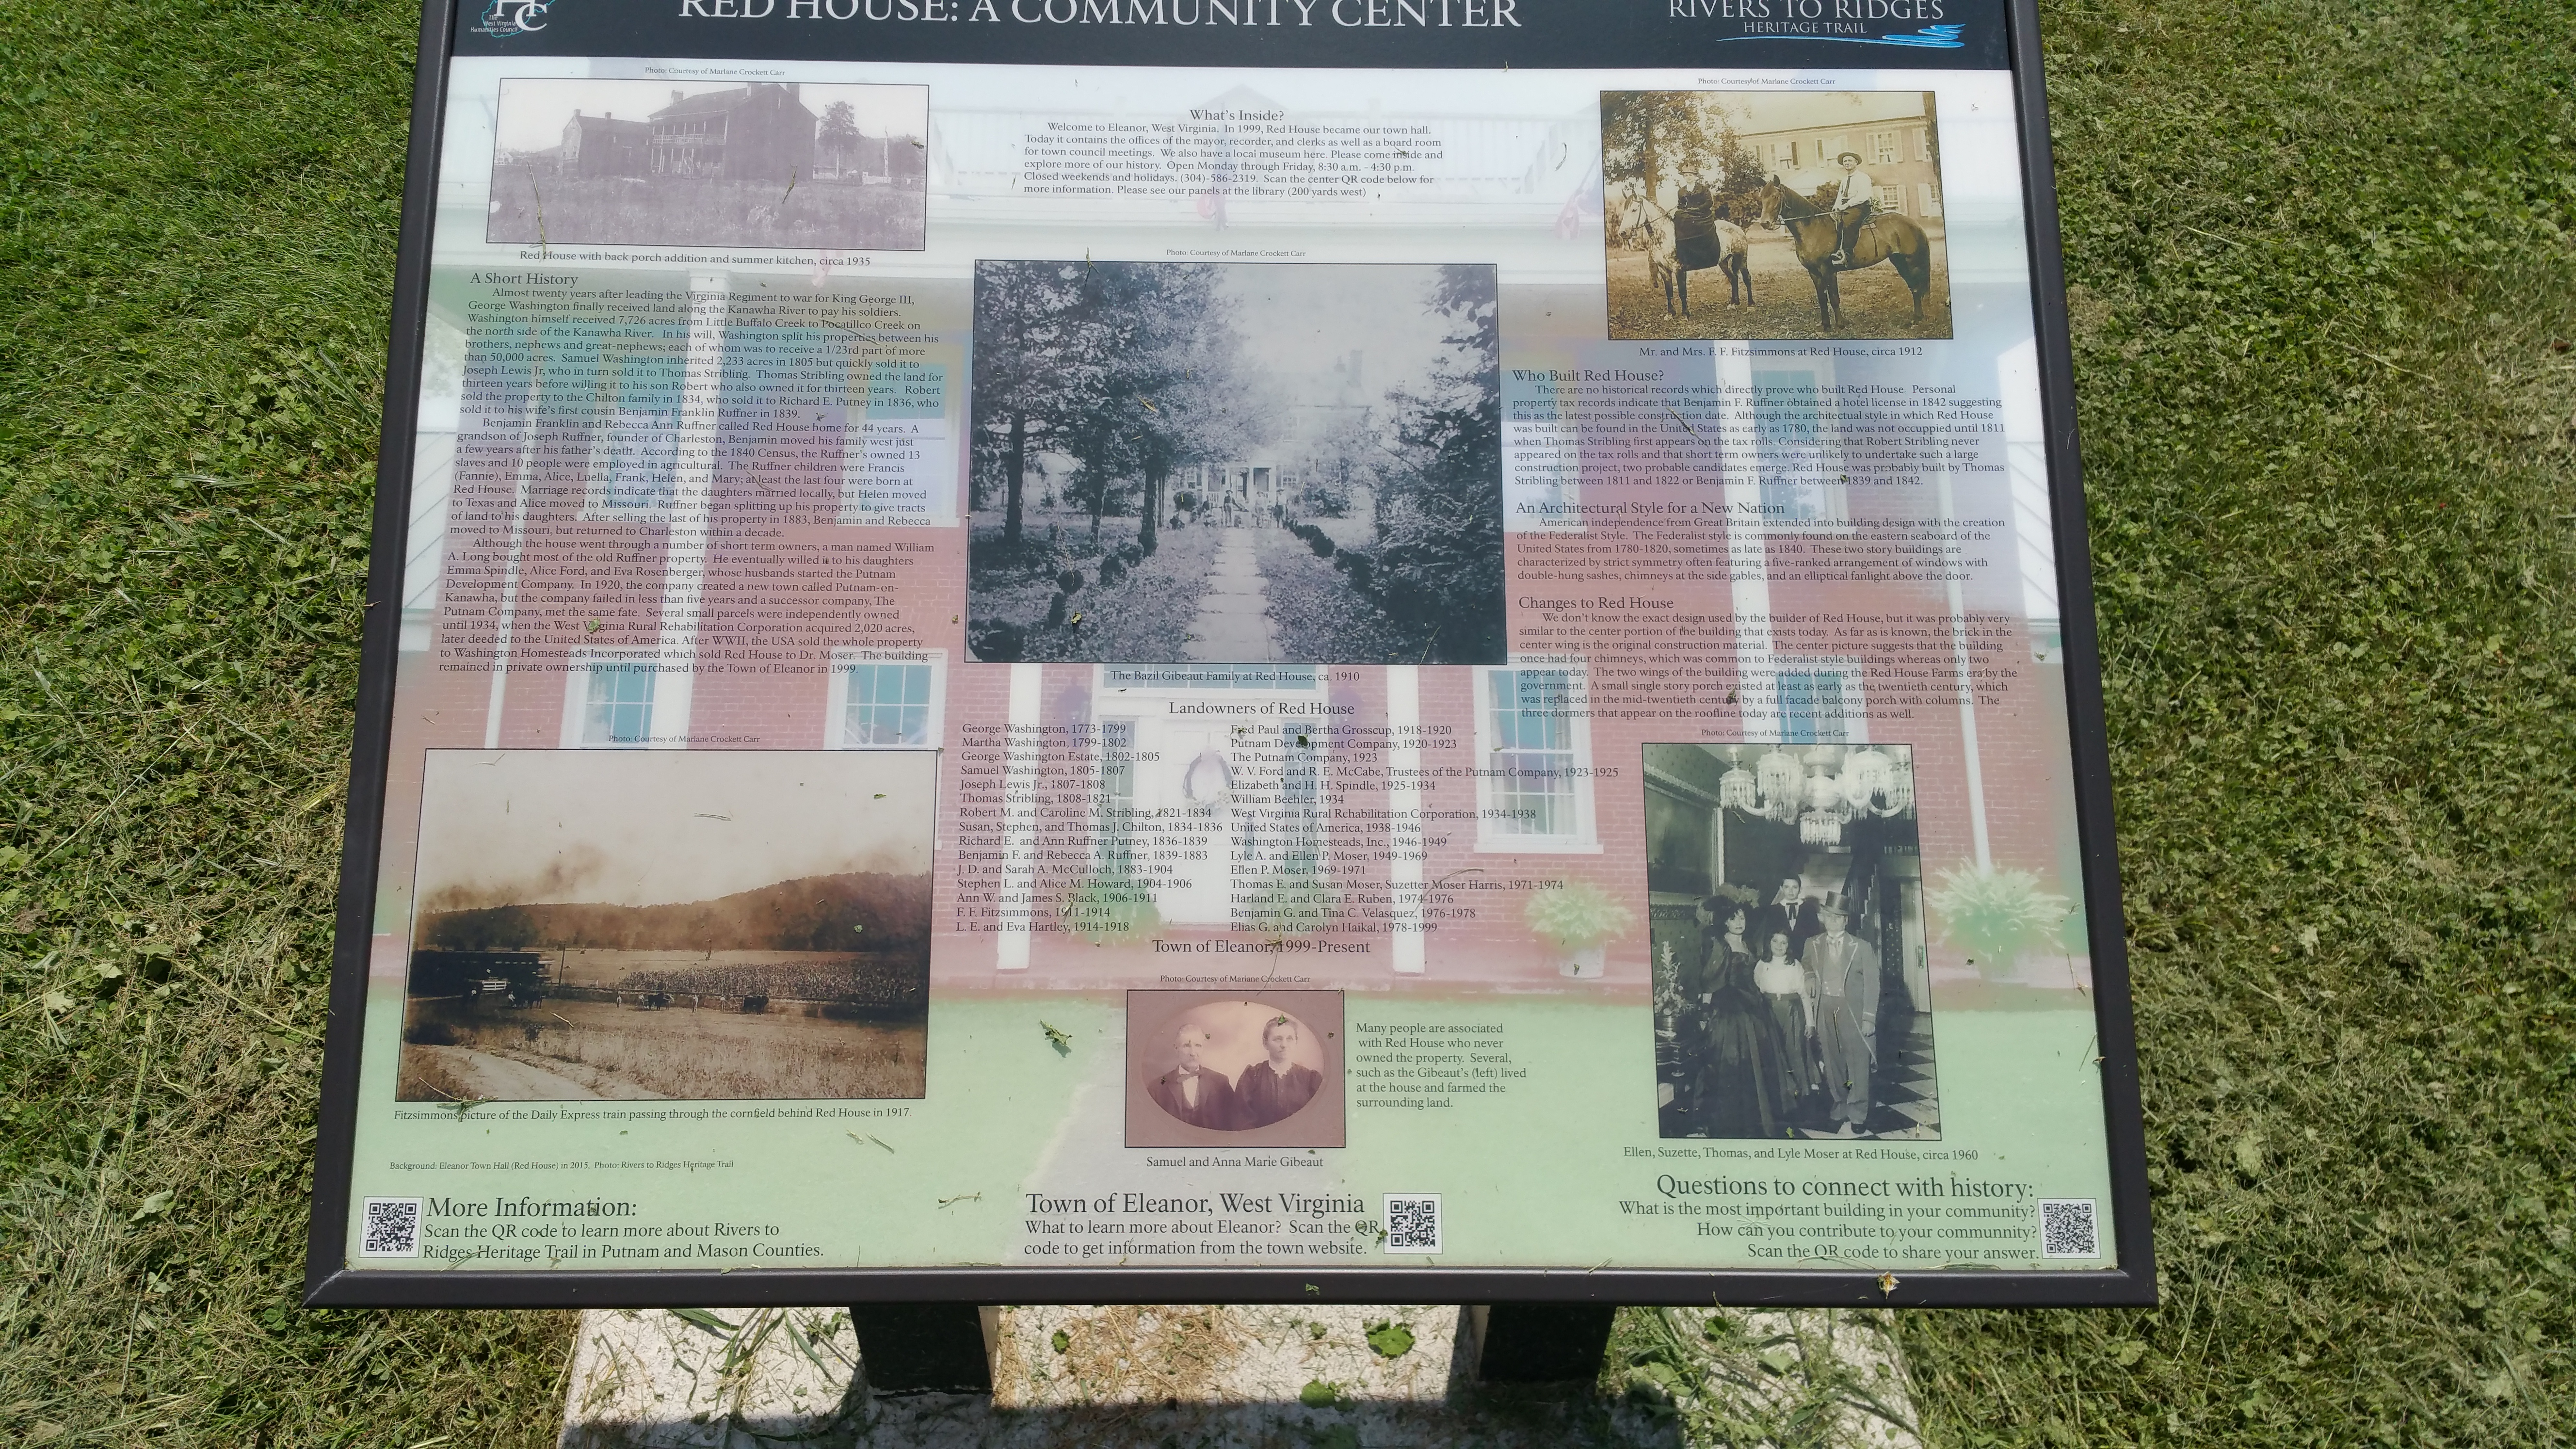 an informational sign on location